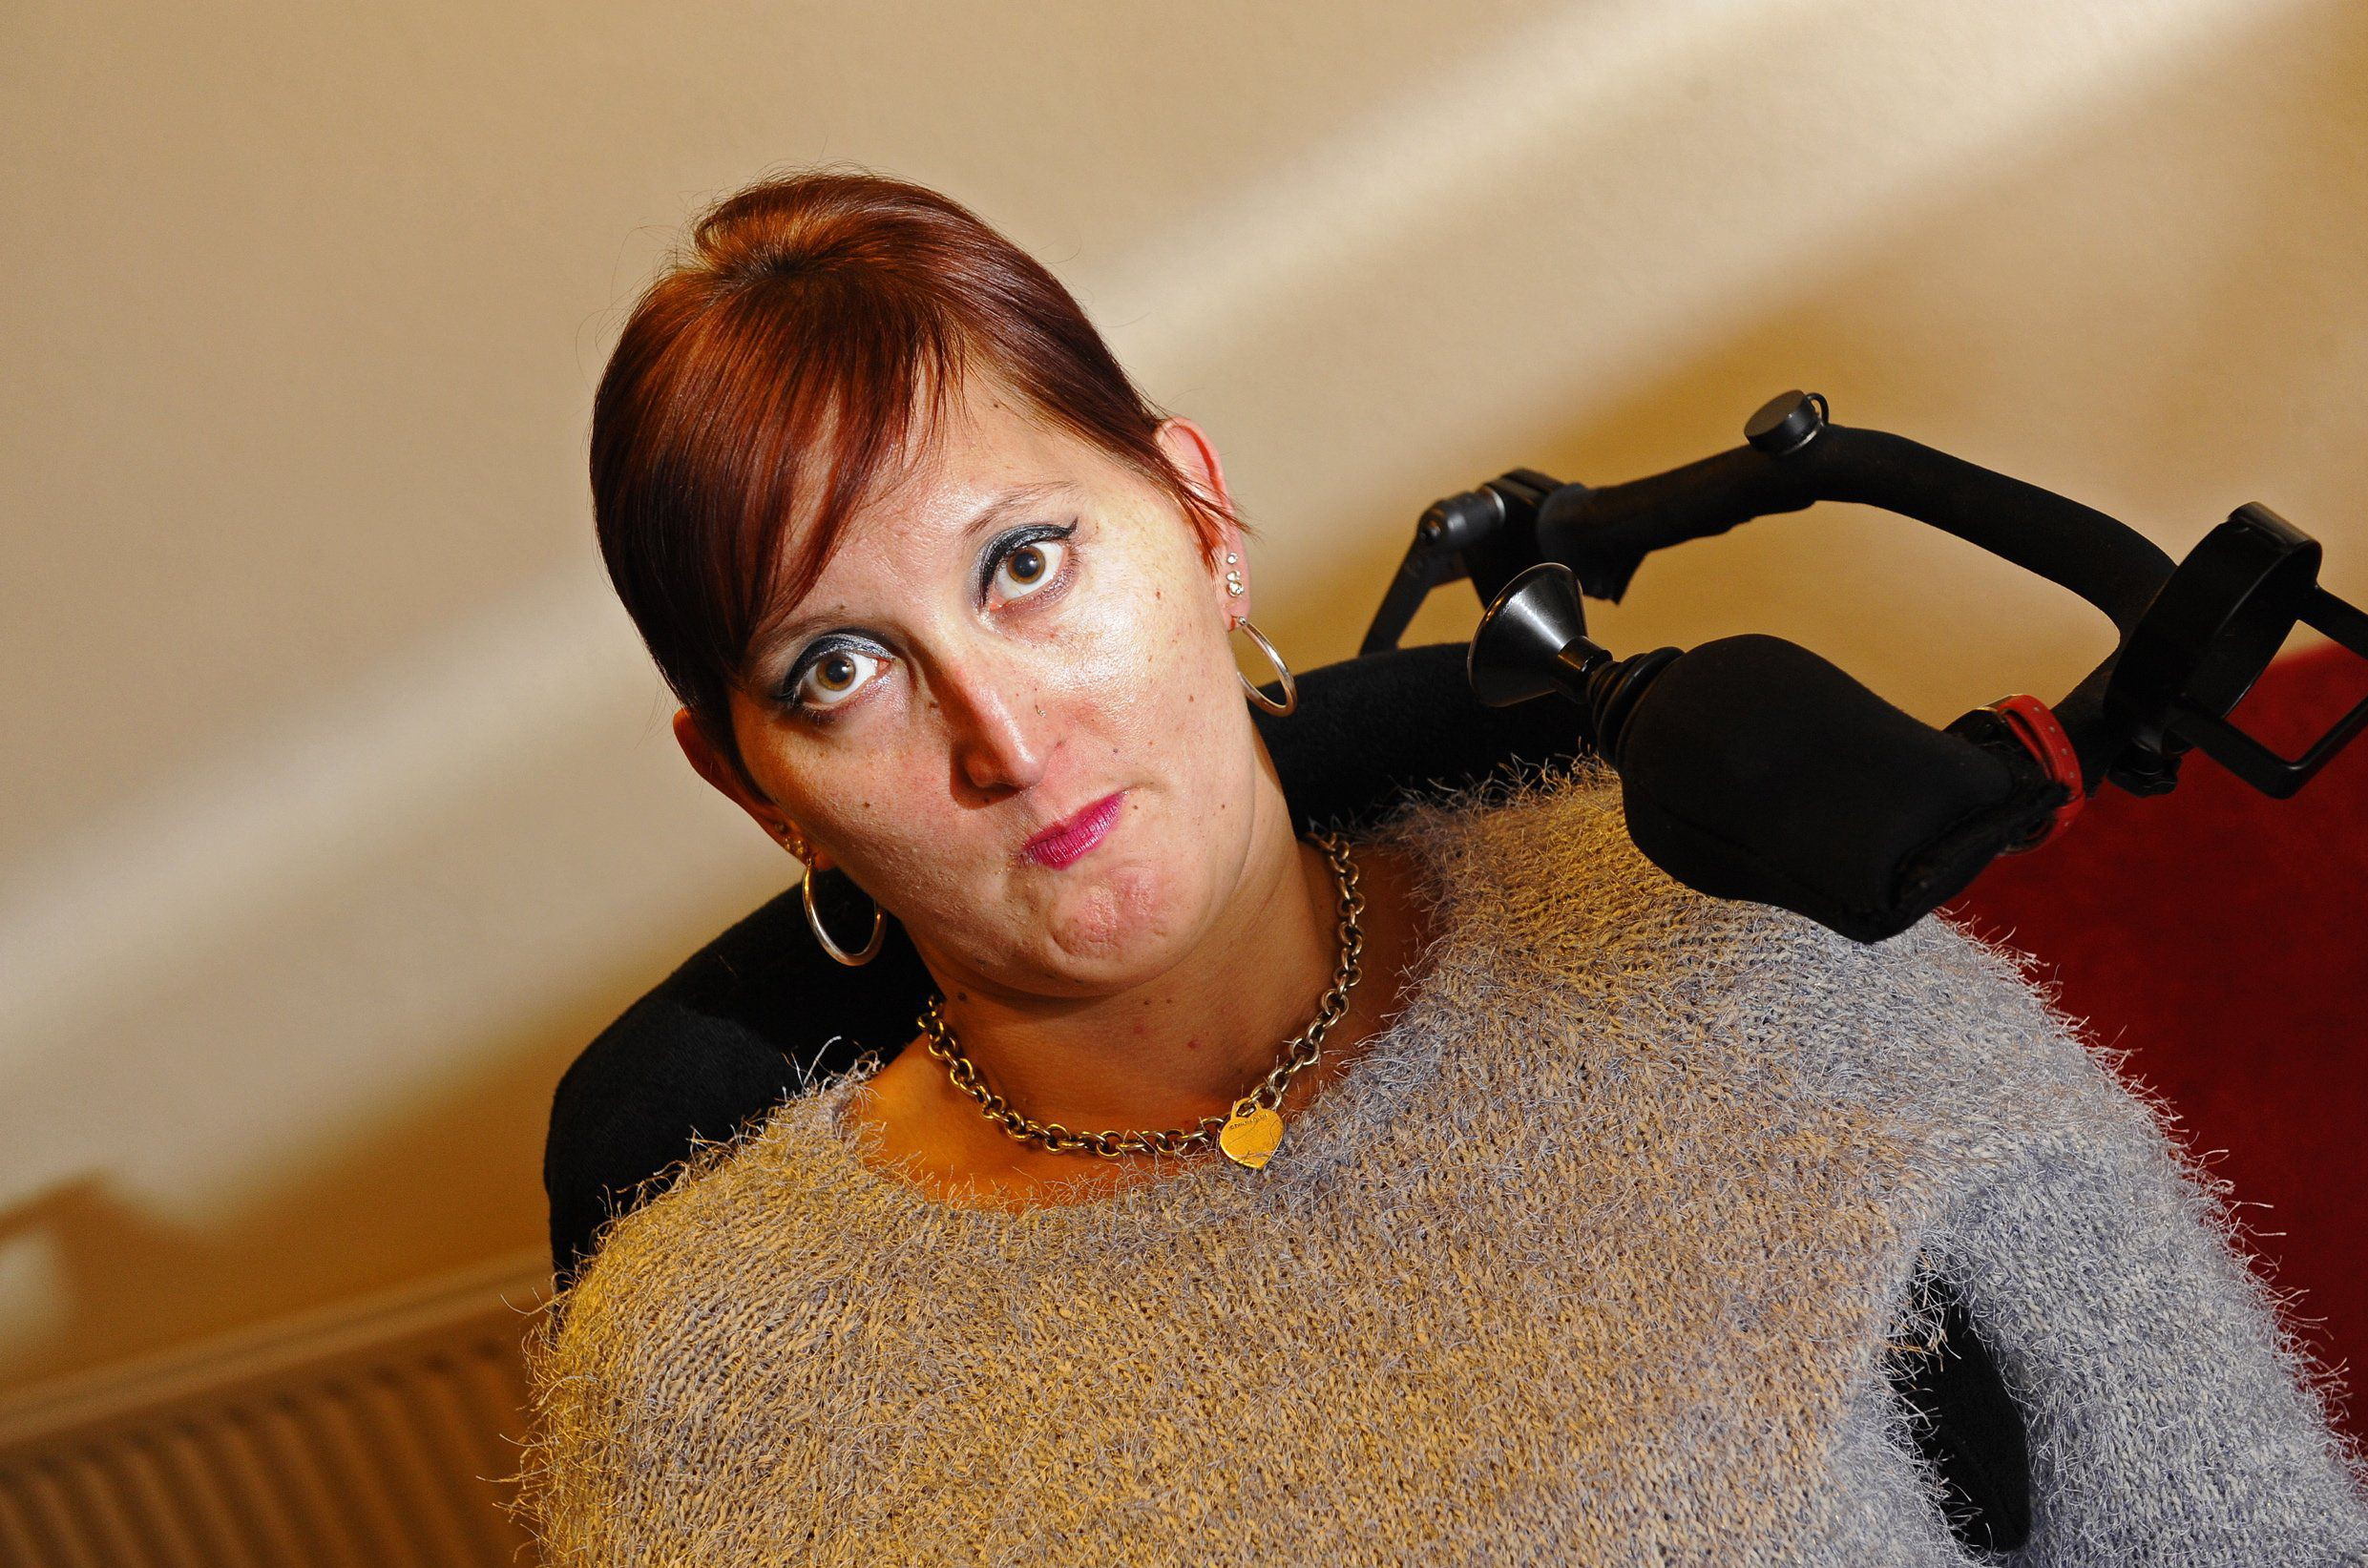 Pictured: Cecilia Turk. A disabled athlete claims she was thrown out of a cinema for being a 'fire hazard'. Cecilia Turk, who suffers from cerebral palsy and uses a wheelchair, had gone to watch 'Heart of the Sea' and says the episode left her feeling 'intimidated and discriminated against'. Half an hour into the film, the 32-year-old said she was asked to leave the new Cineworld in Whiteley, Hants, because she was blocking a fire exit. SEE OUR COPY FOR DETAILS. © Portsmouth News/Solent News & Photo Agency UK +44 (0) 2380 458800